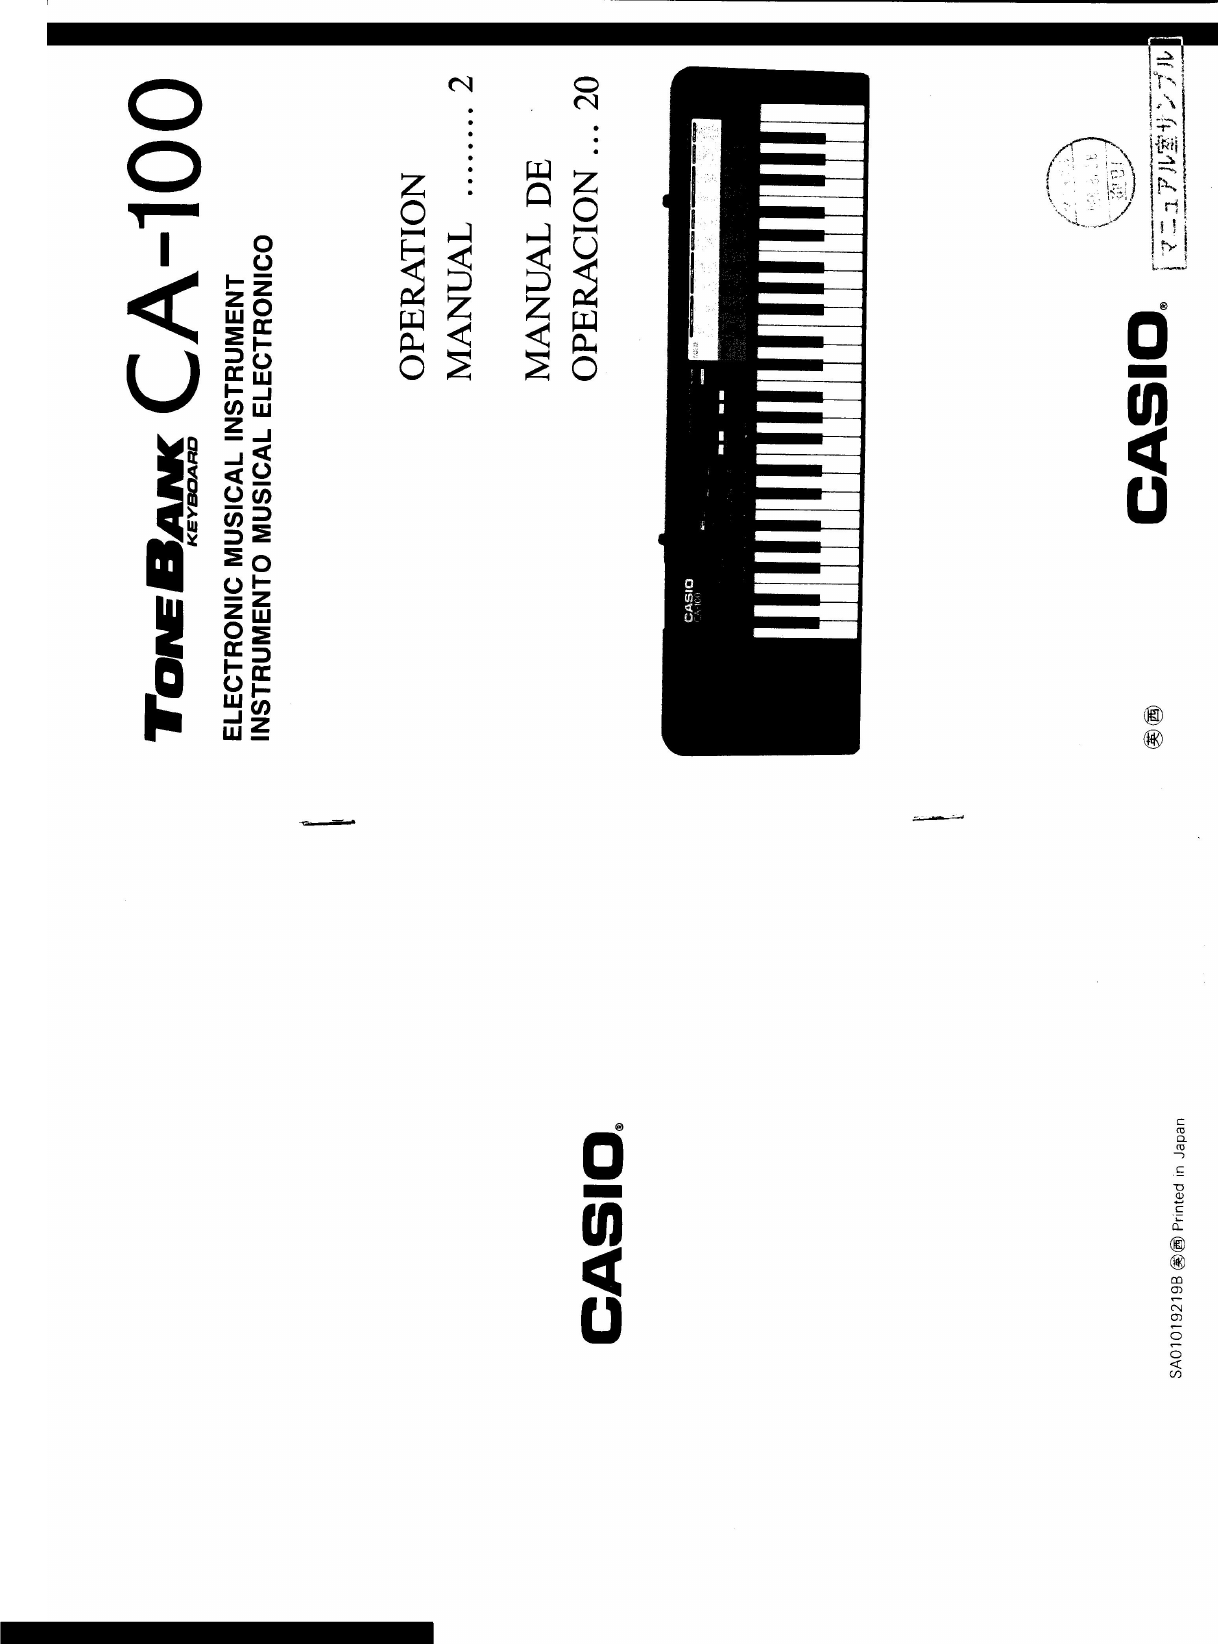 Casio Ca 100 Quick Start Guide 822389 ManualsLib Makes It